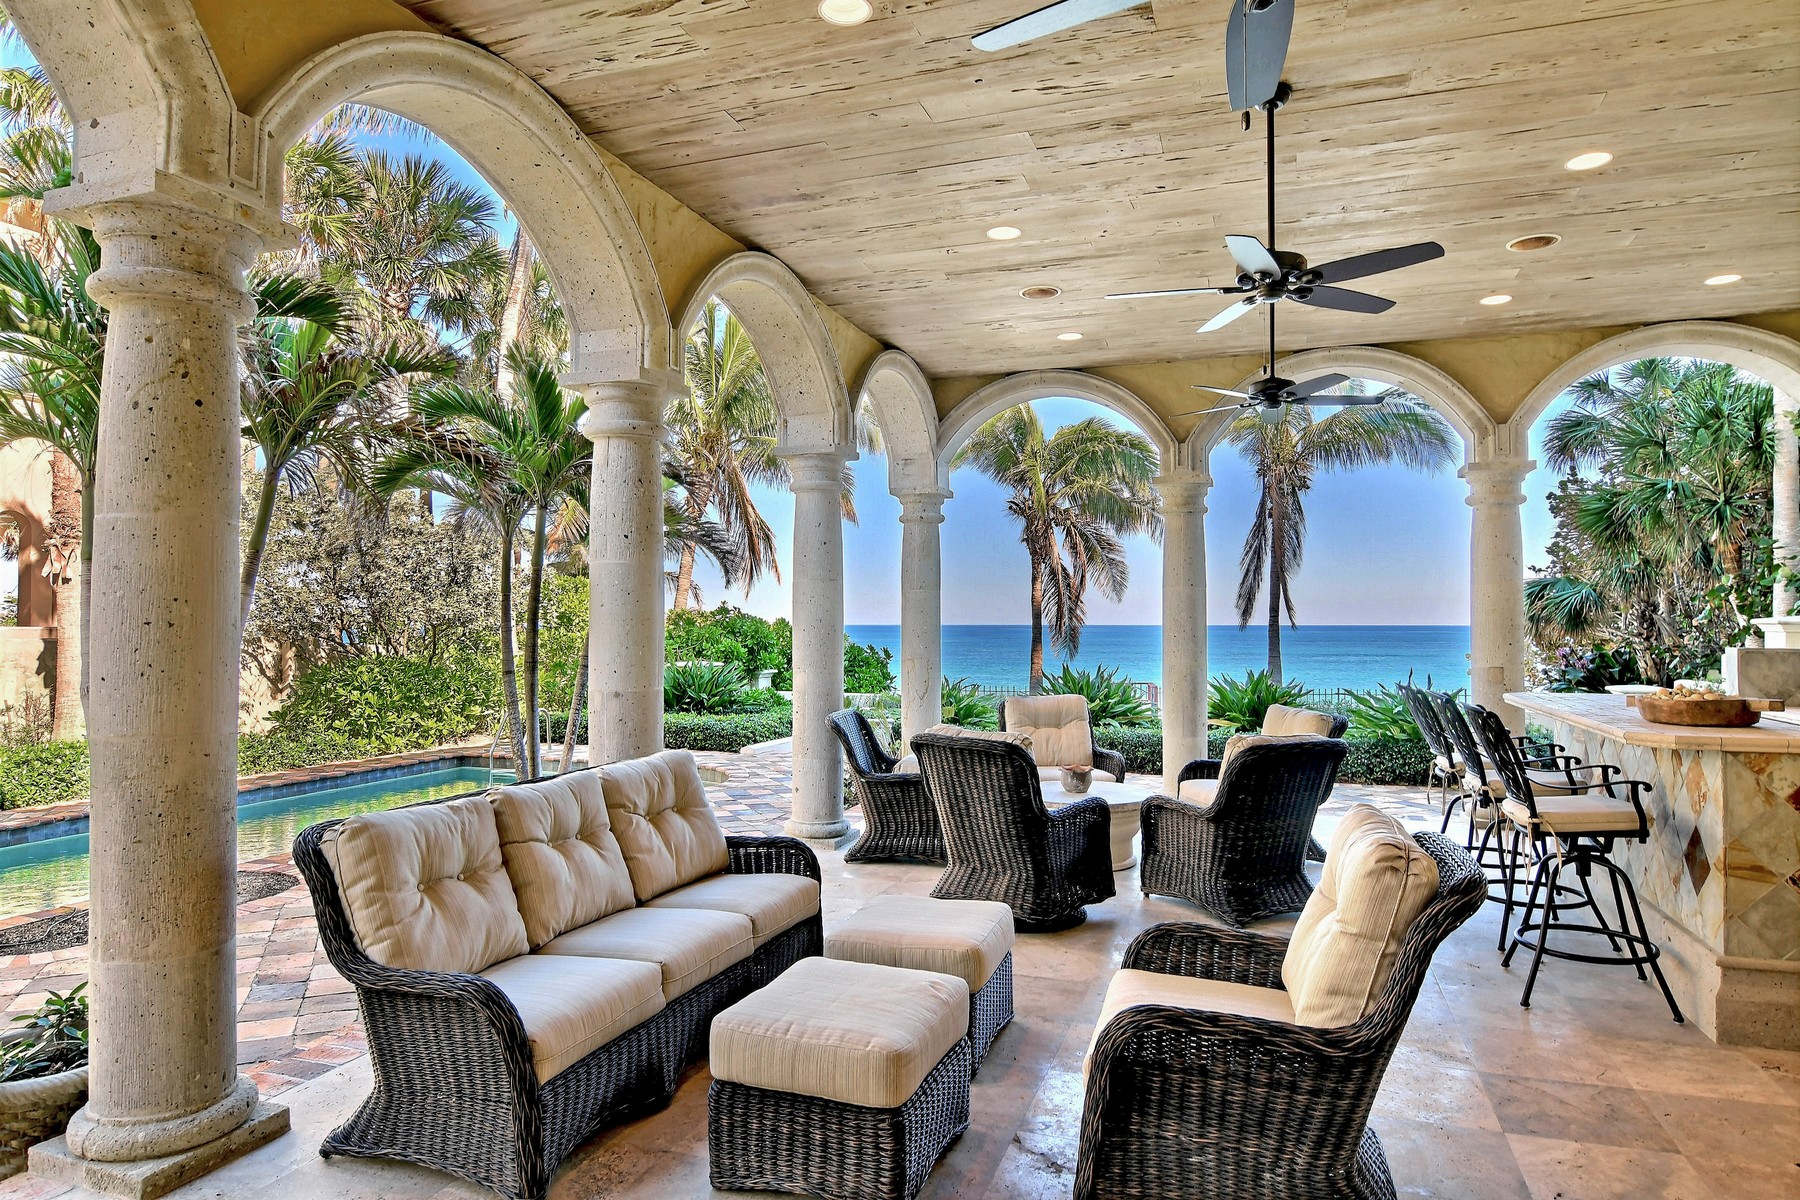 Property for Sale at Mediterranean Oceanfront Masterpiece! 3620 Ocean Drive Vero Beach, Florida 32963 United States